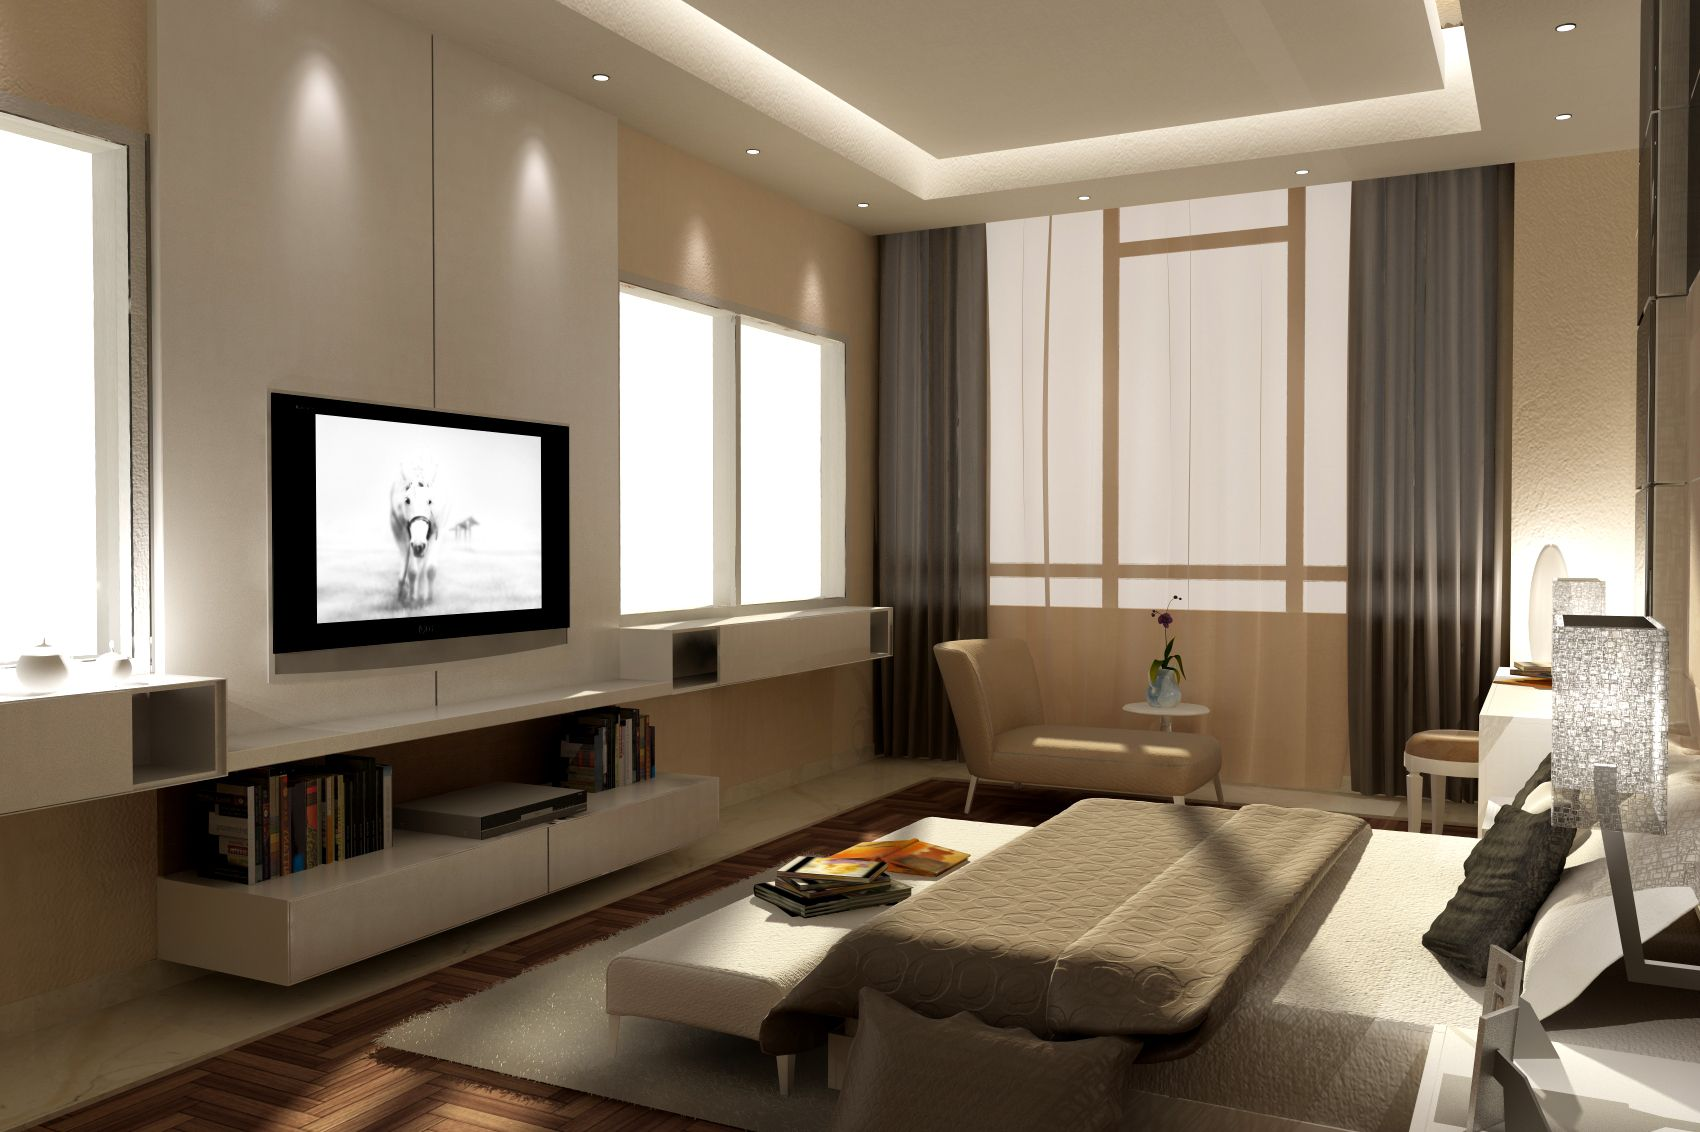 Bedroom modern bedroom interior design 3d max 3d for Bedroom interior design pictures